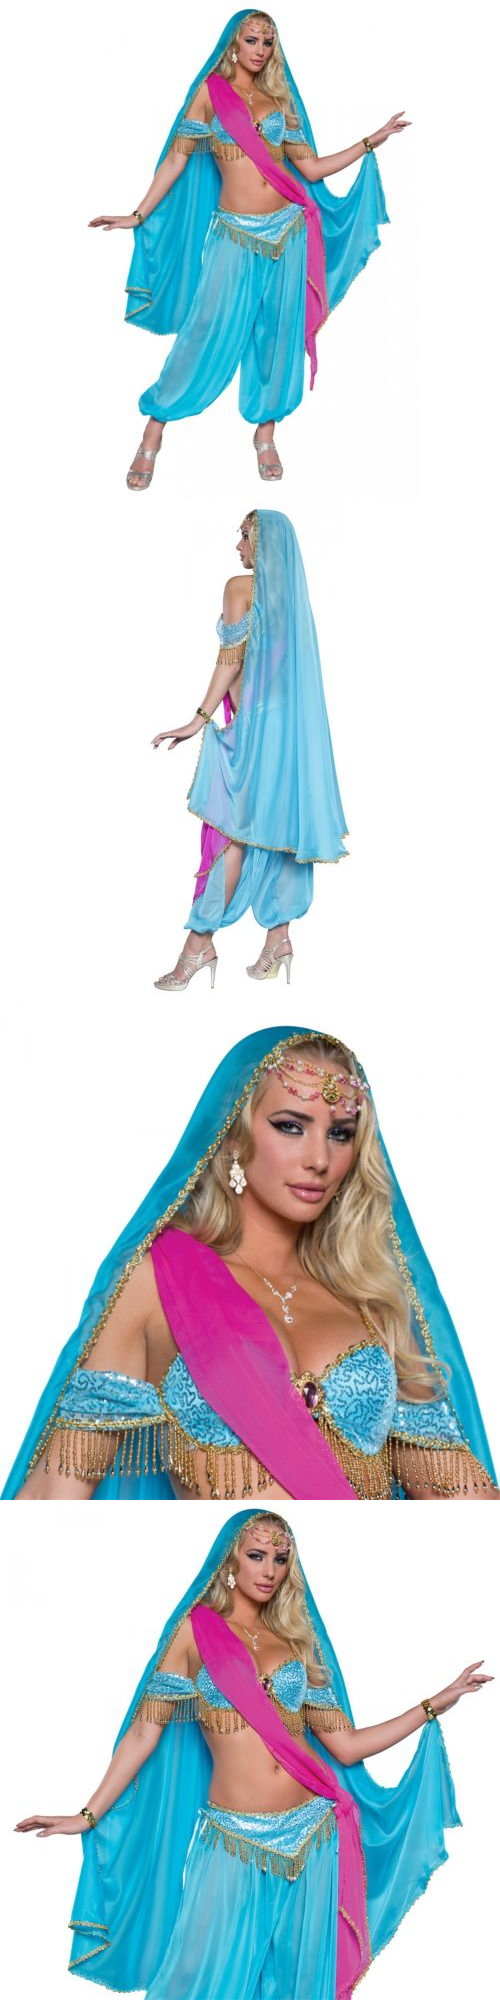 Halloween Costumes Women Exotic Jewel Of The East Costume Halloween Fancy Dress -u003e BUY  sc 1 st  Pinterest & Halloween Costumes Women: Exotic Jewel Of The East Costume Halloween ...